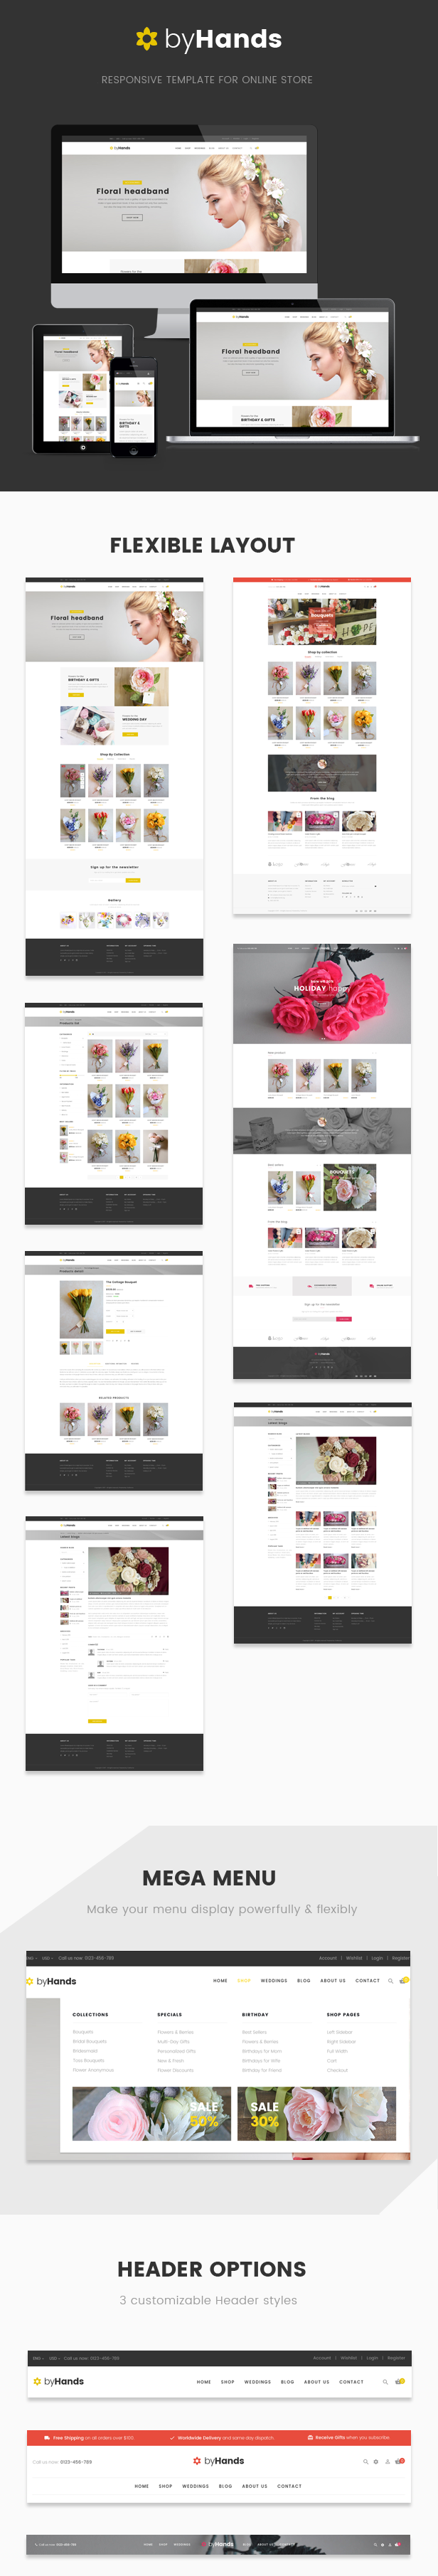 ByHands - Flower Store WooCommerce Theme